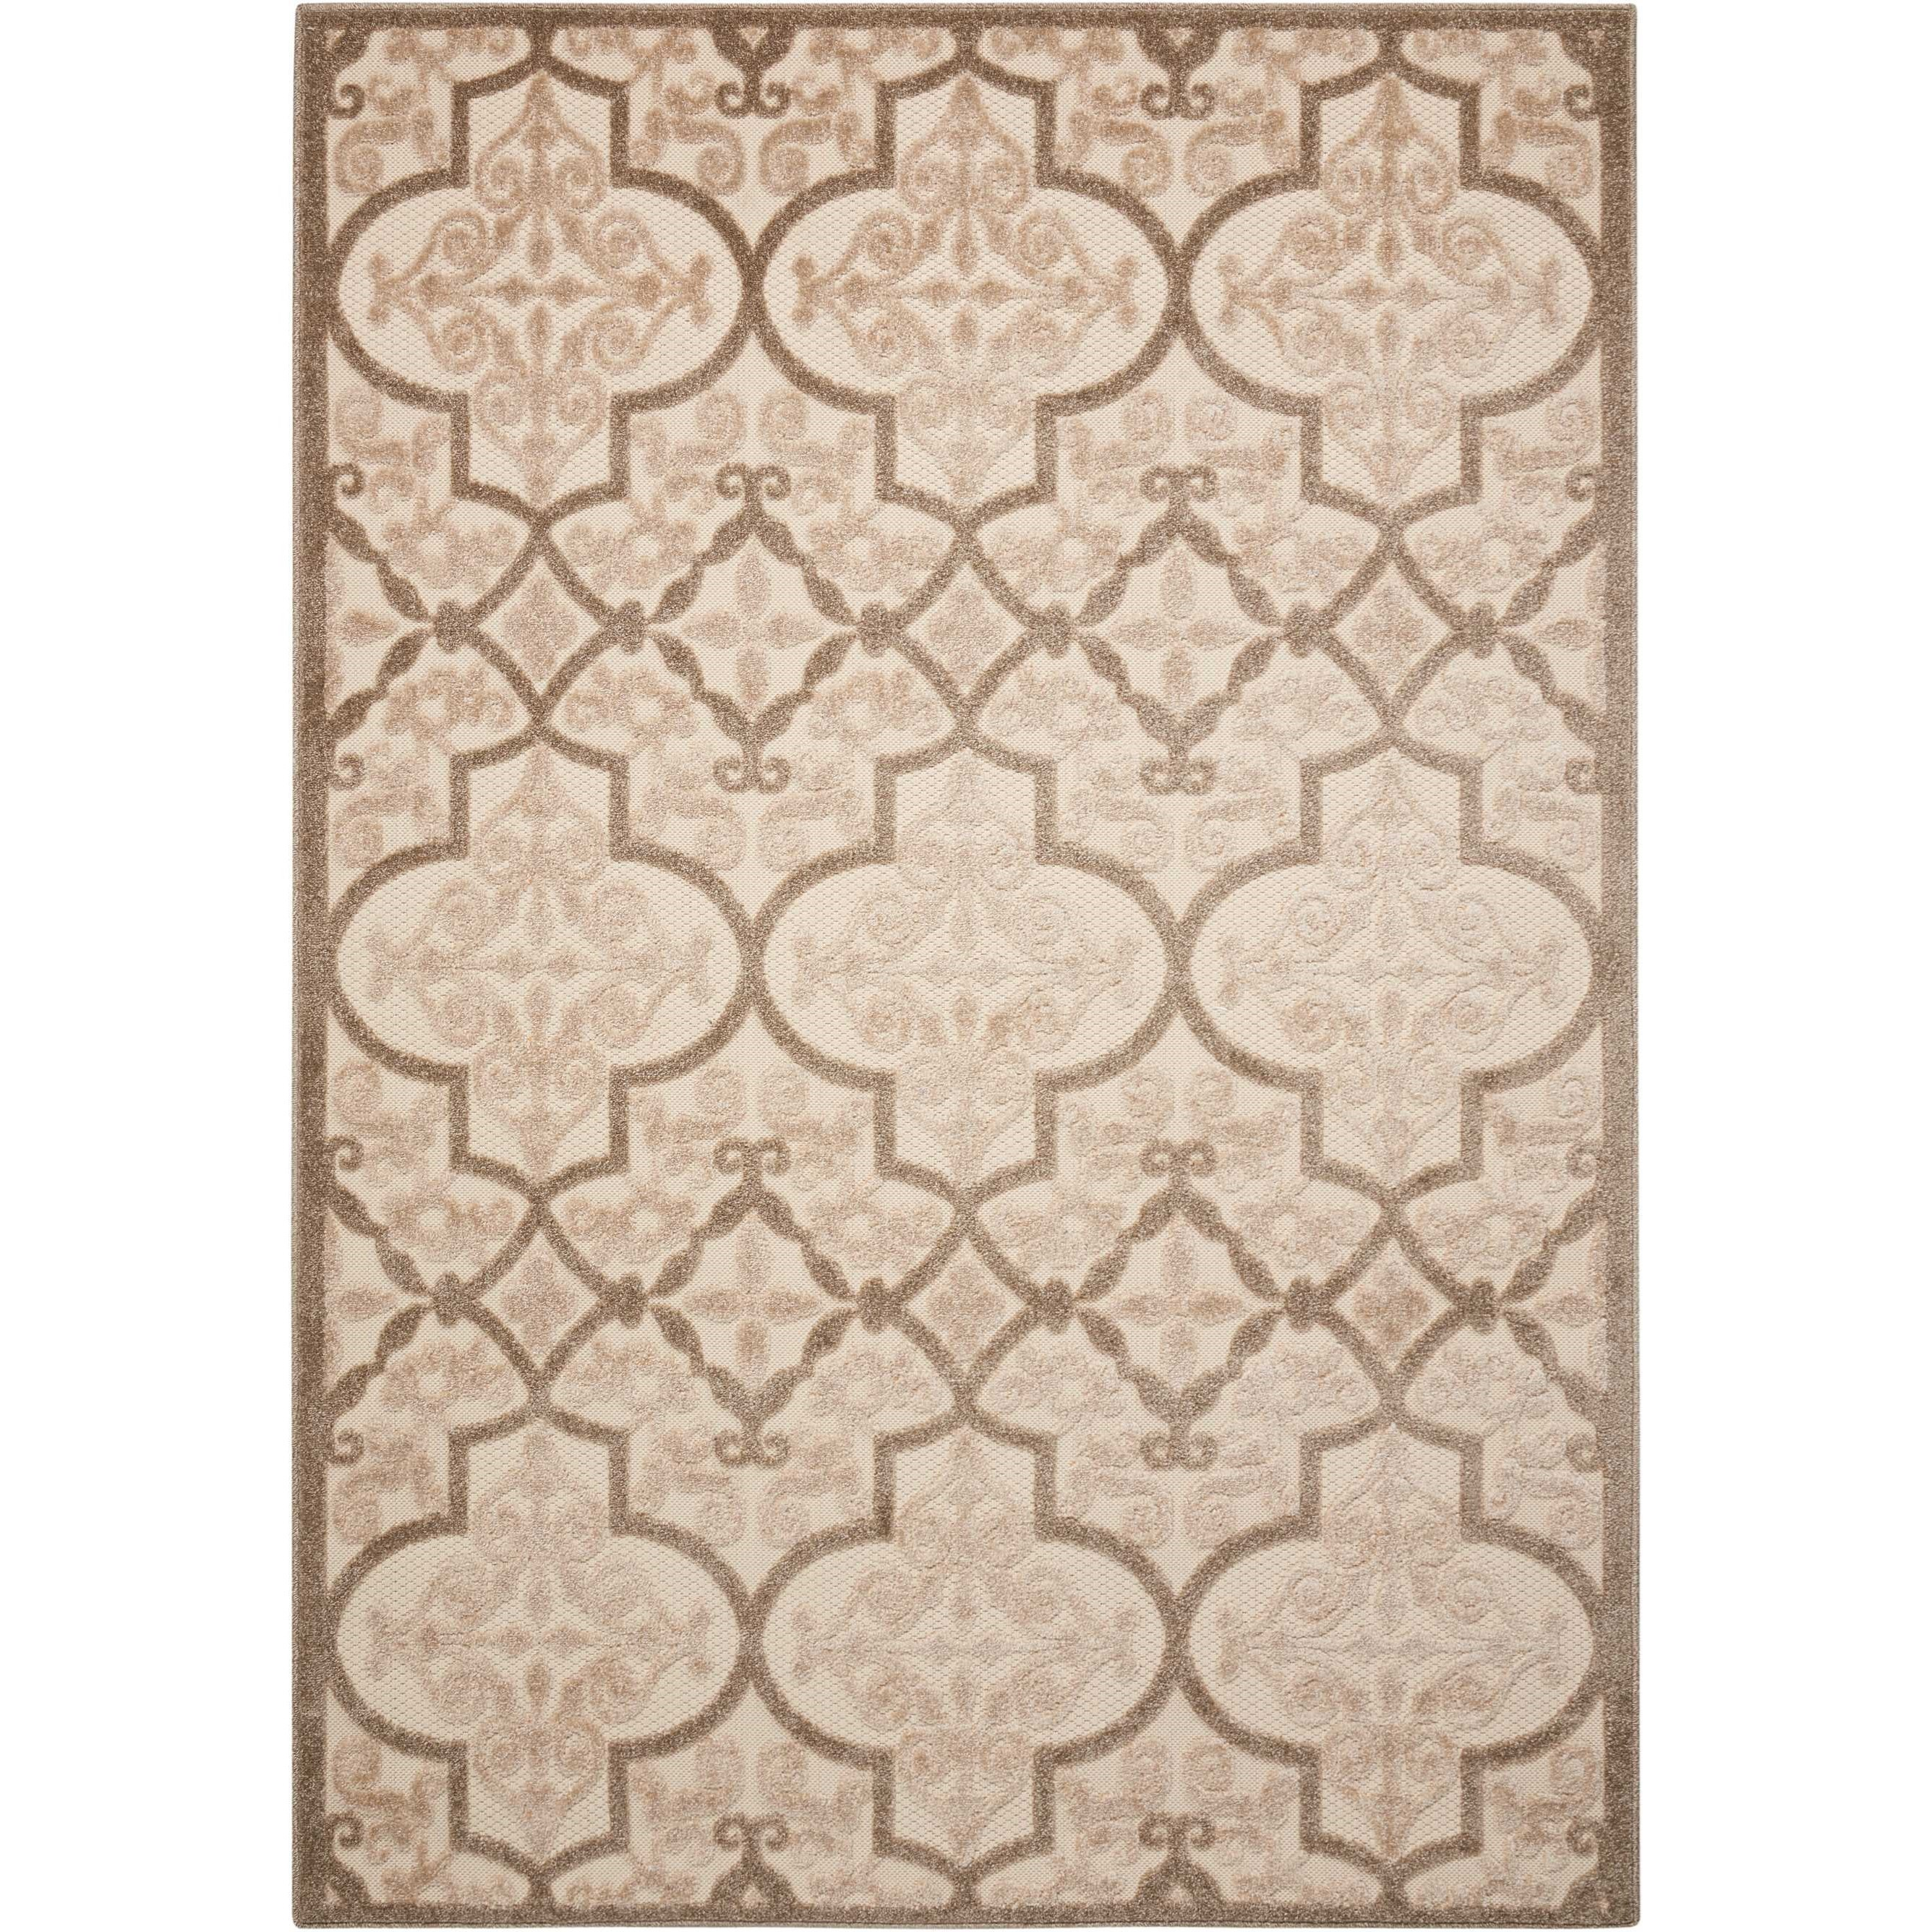 "Aloha 5'3"" X 7'5"" Cream                Rug by Nourison at Sprintz Furniture"